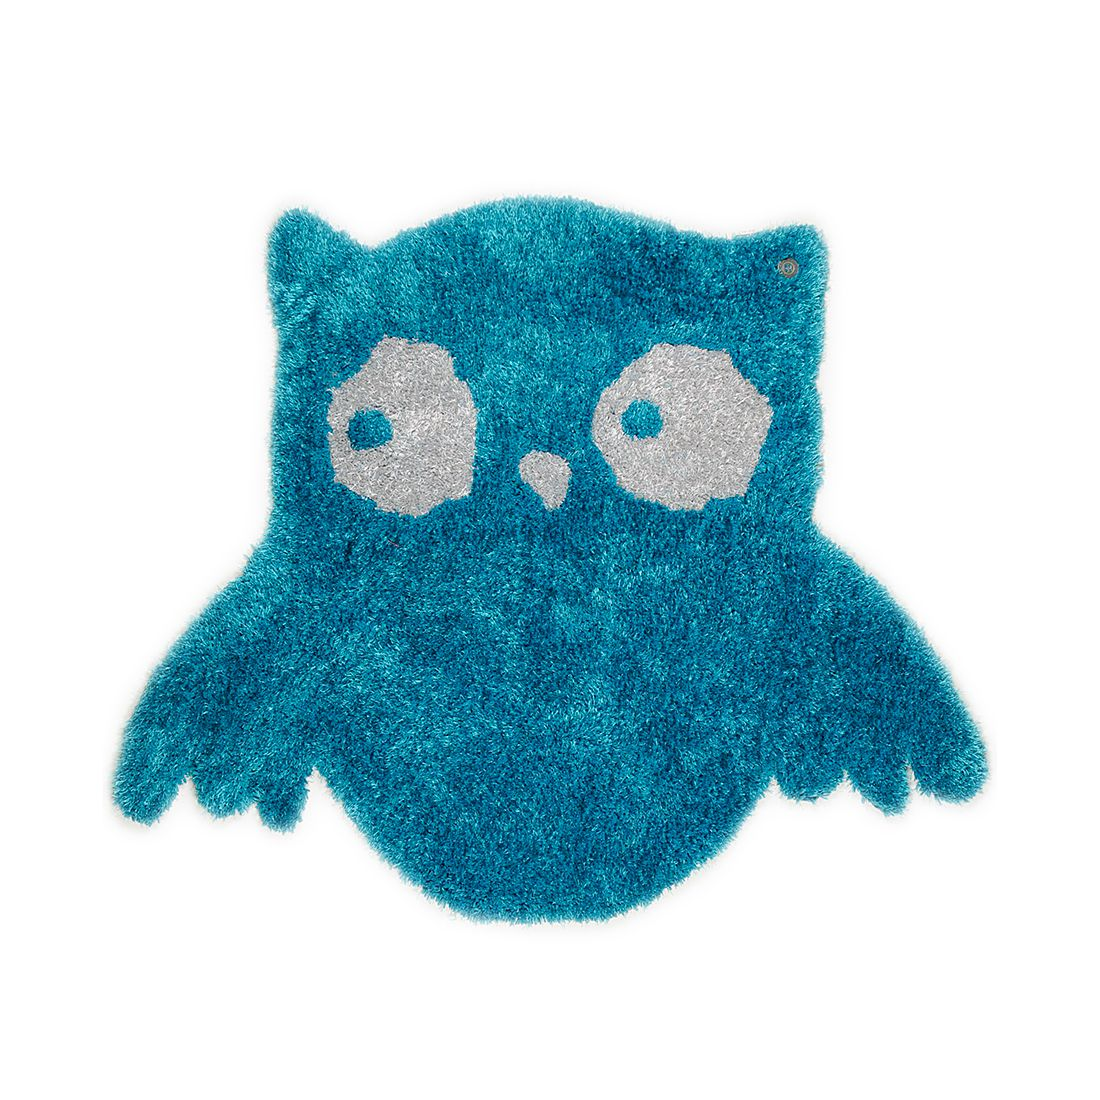 Home 24 - Tapis soft owl - turquoise - 120 x 100 cm, tom tailor